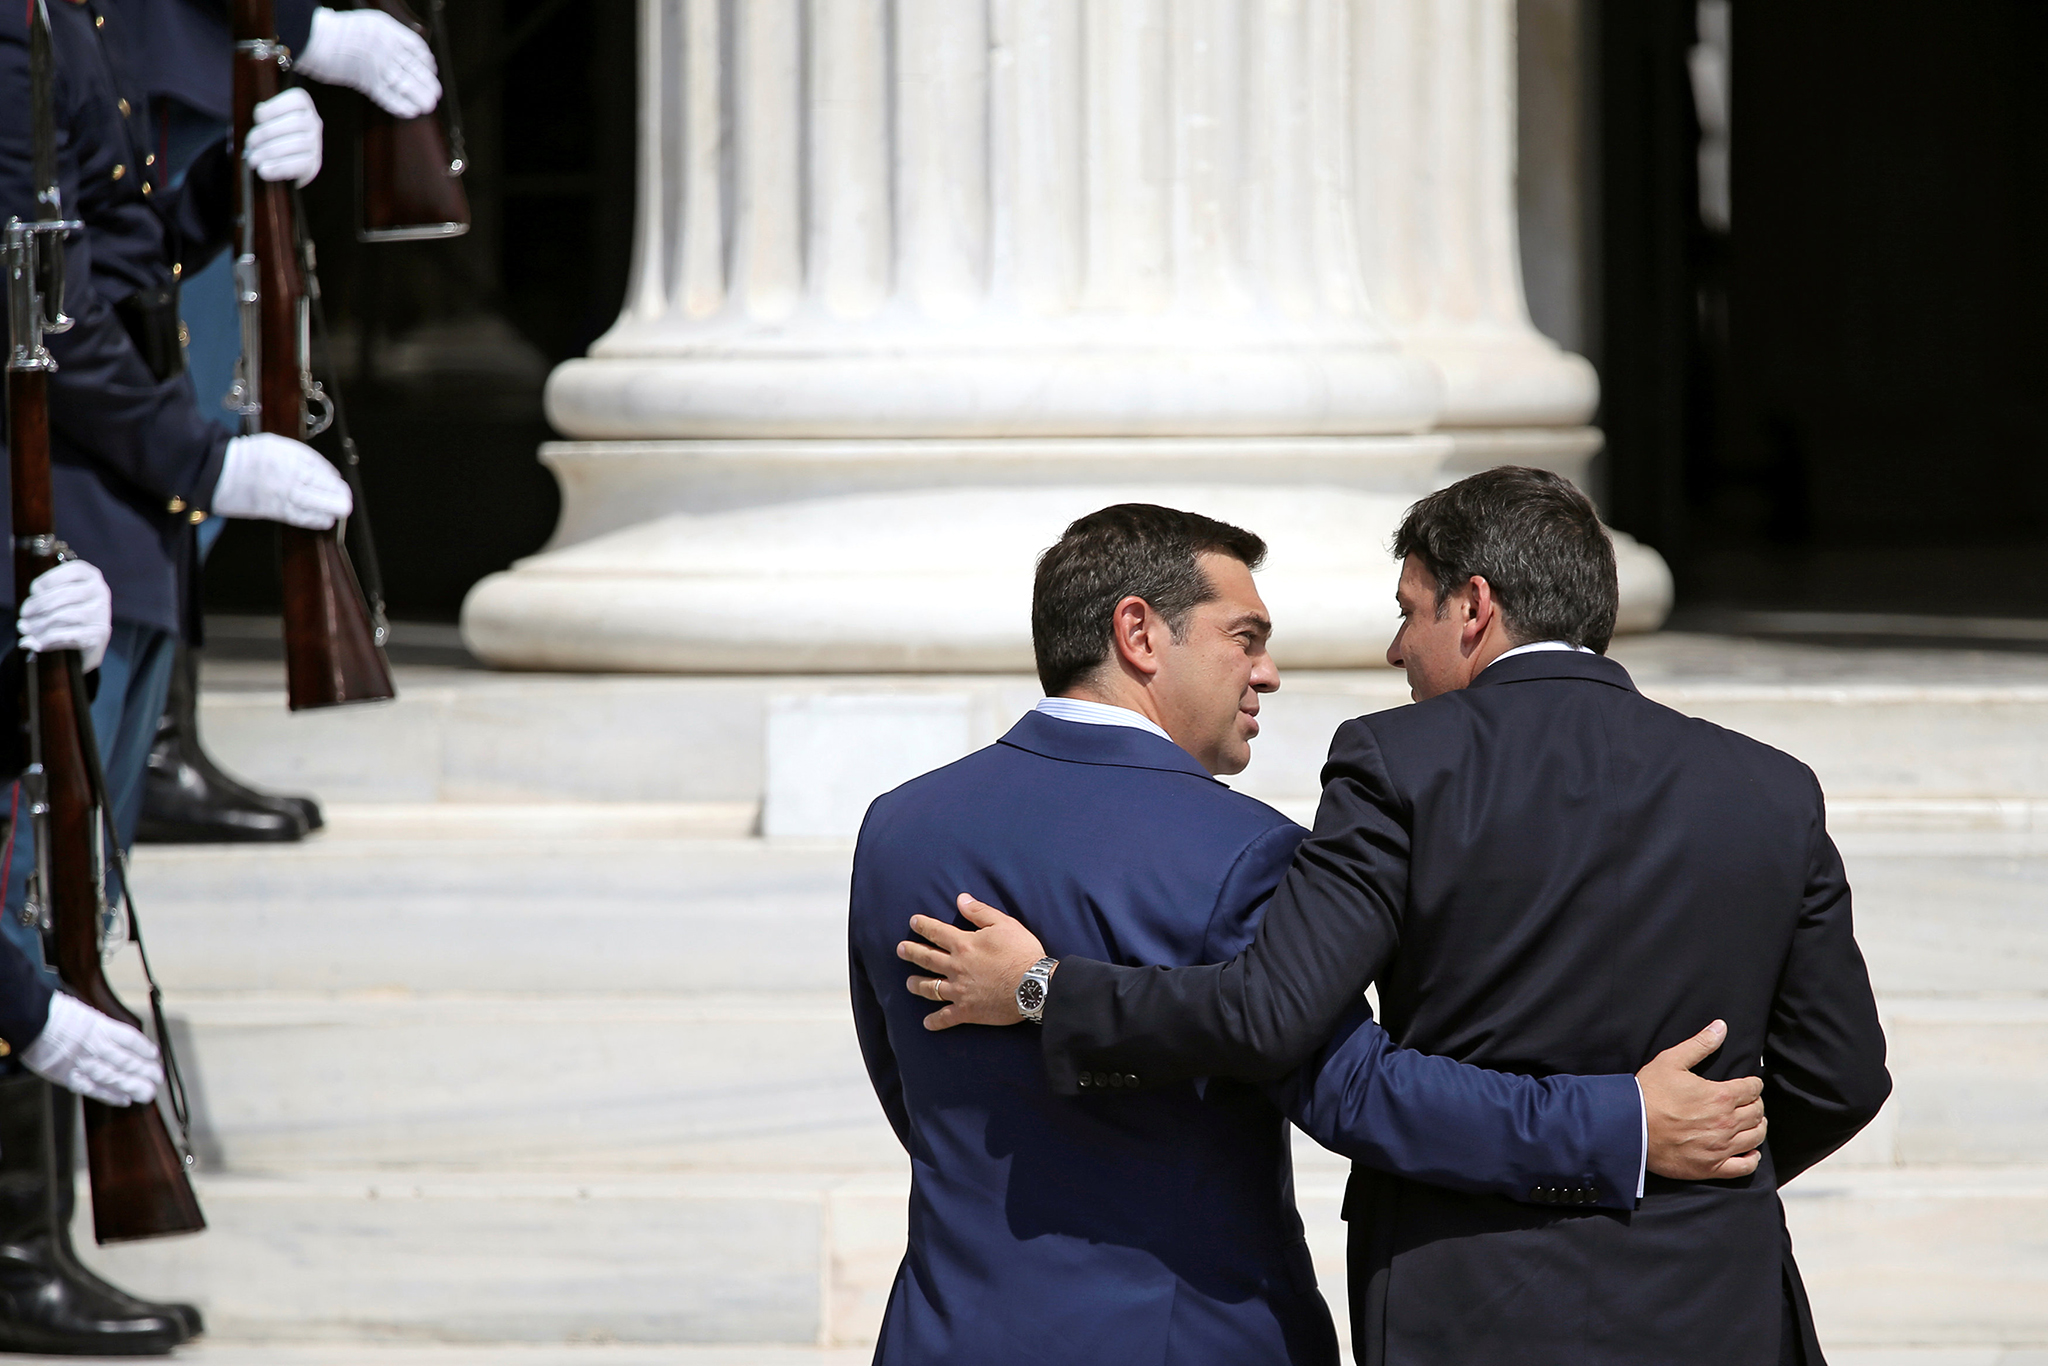 Greek Prime Minister Alexis Tsipras welcomes Italian Prime Minister Matteo Renzi for a summit of southern European states at Zappeion Hall in Athens, Greece, September 9, 2016. REUTERS/Alkis Konstantinidis     TPX IMAGES OF THE DAY